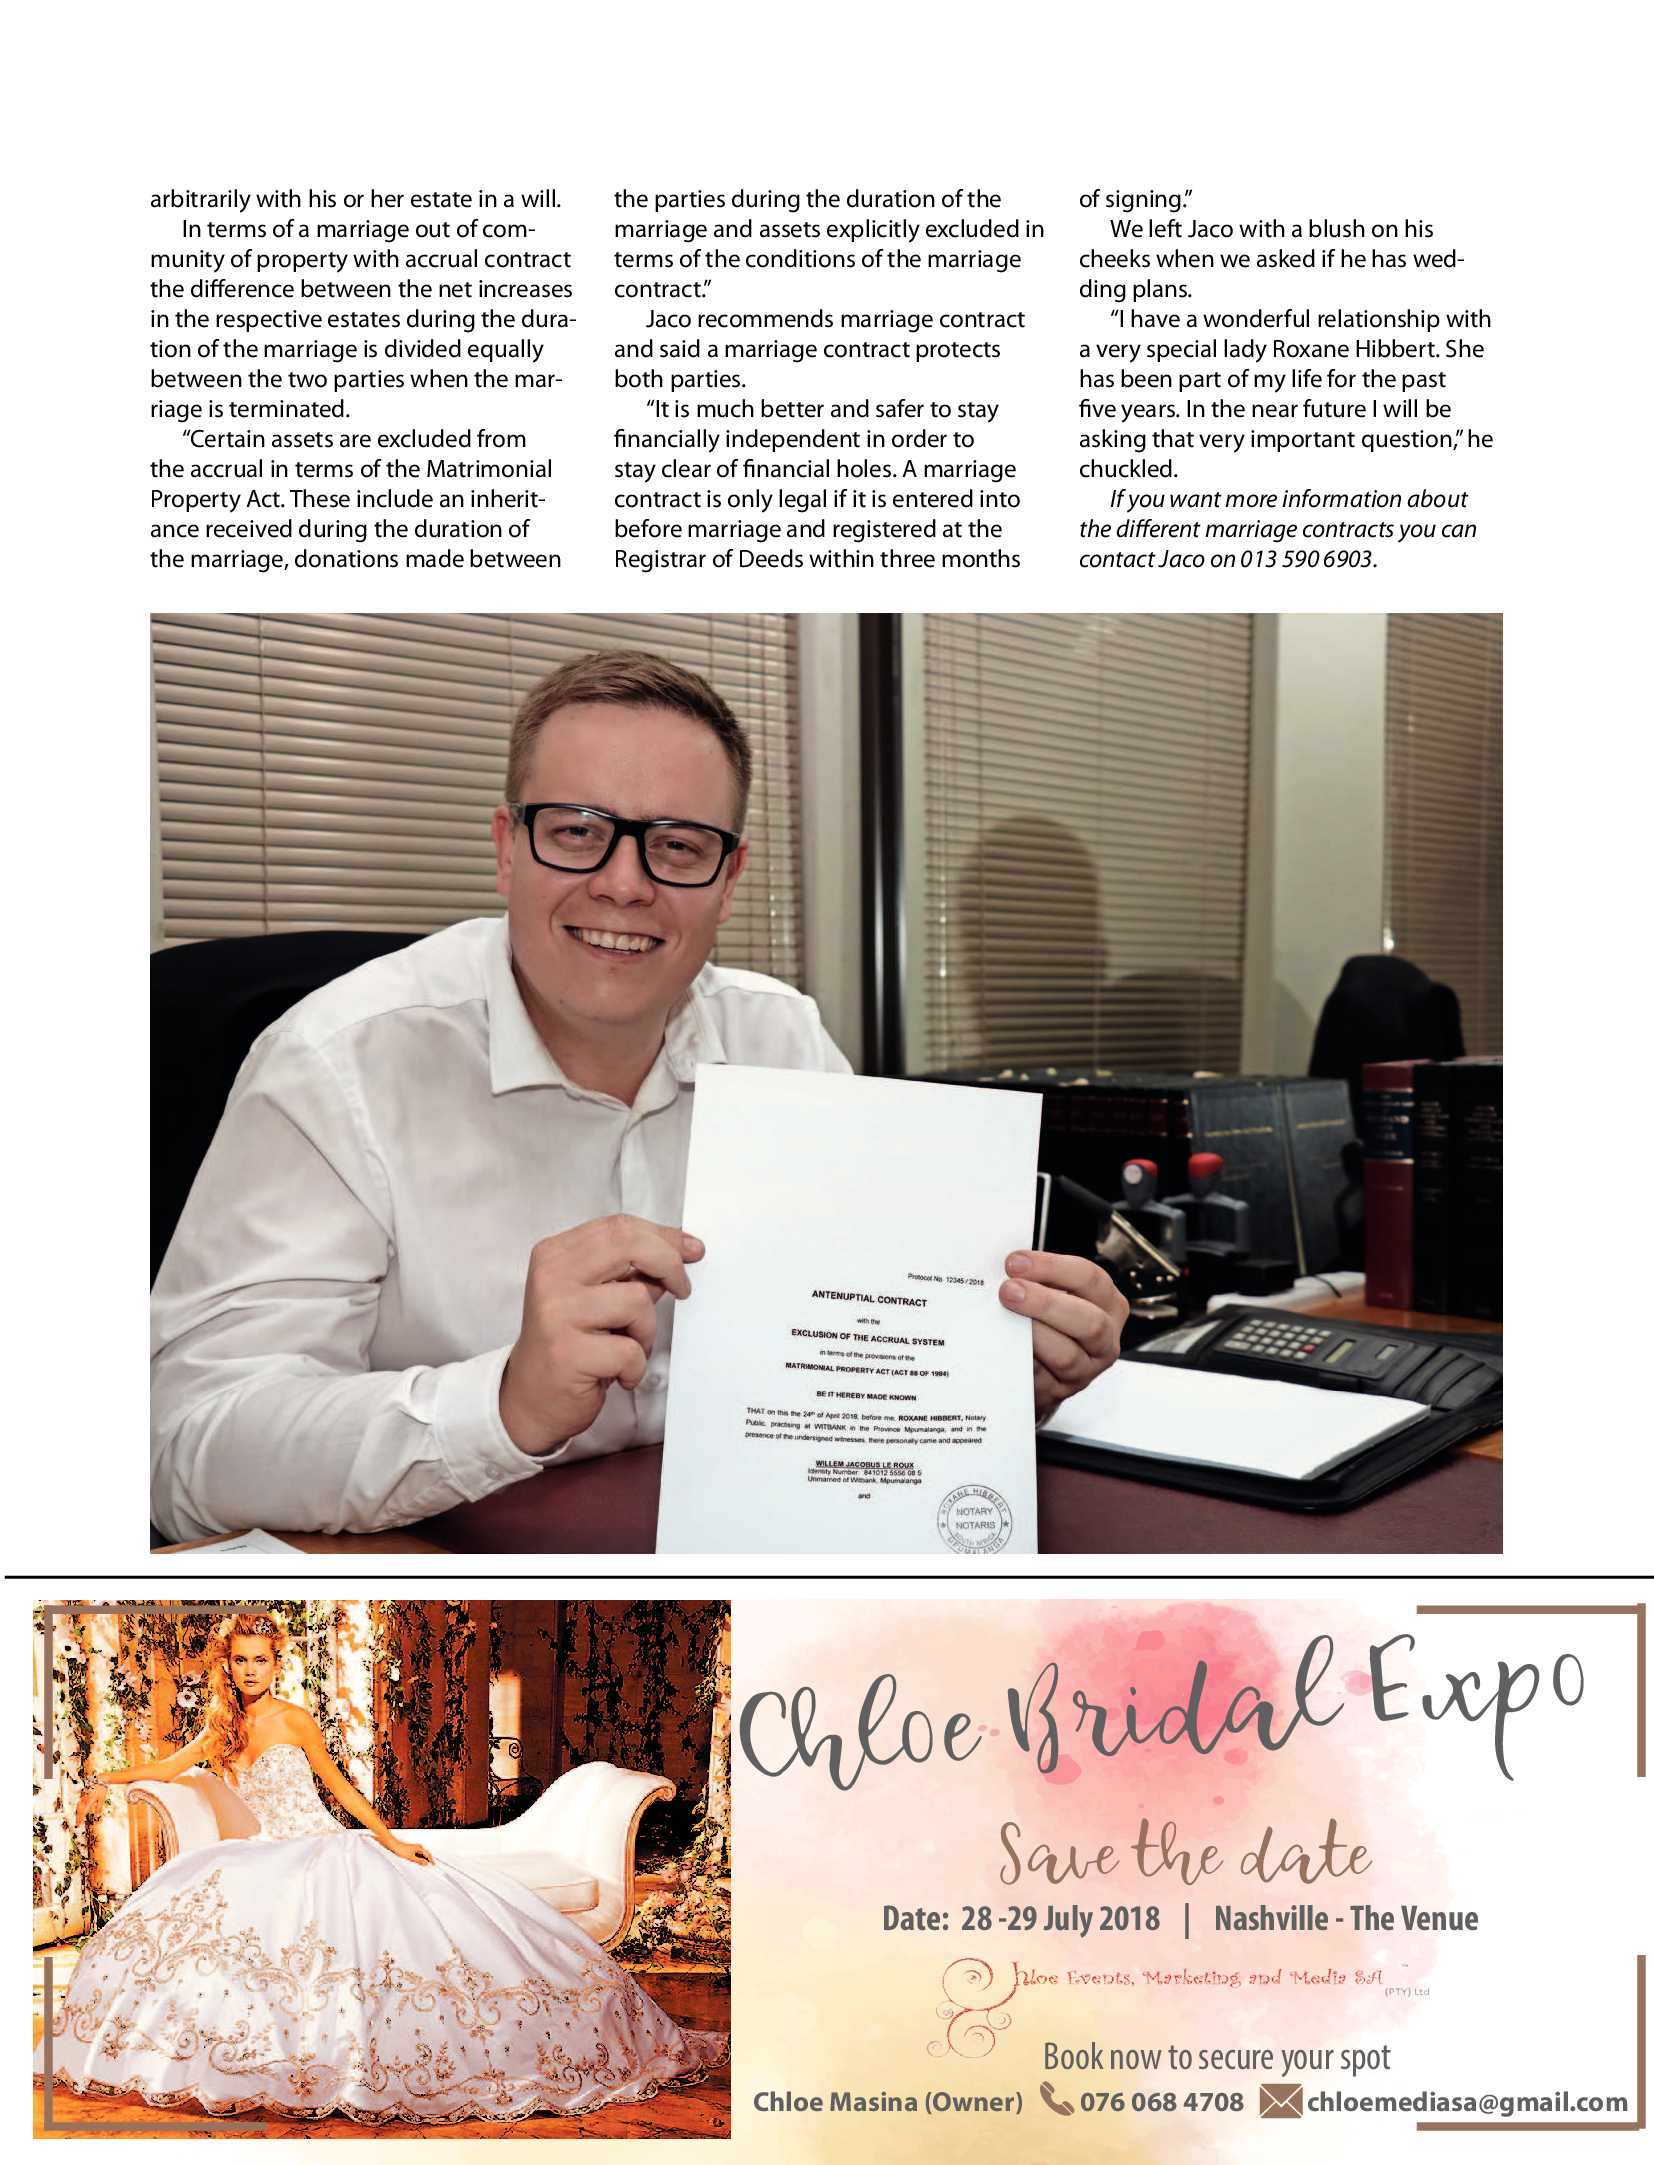 get-middelburg-june-2018-epapers-page-17